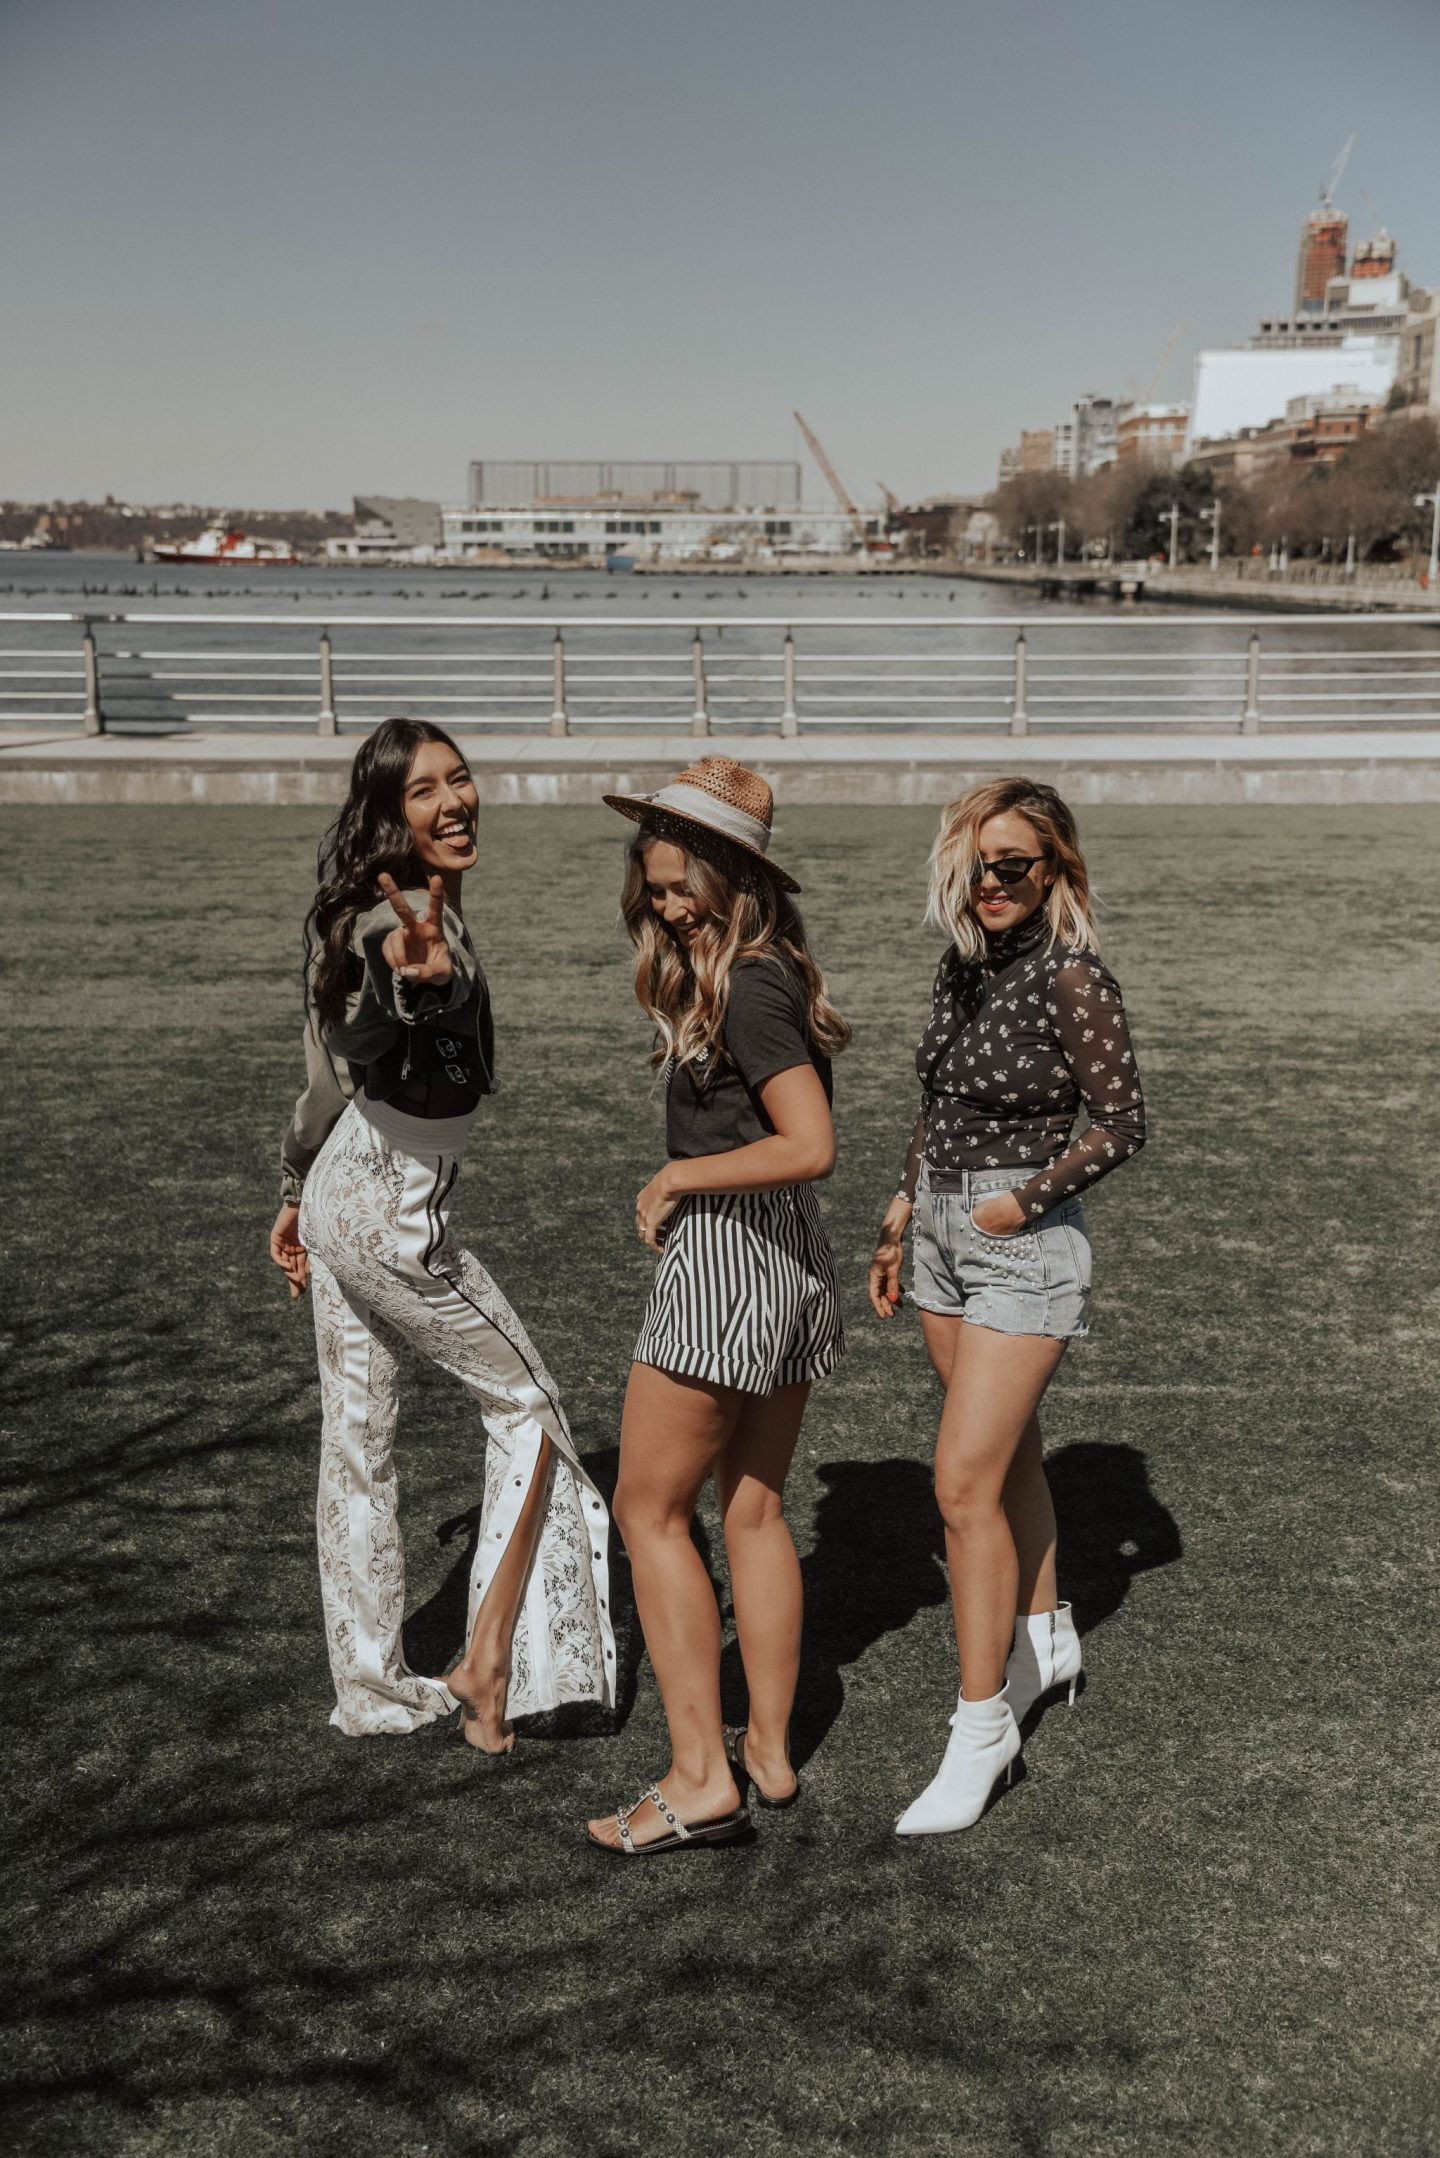 150e78c374aead It s festival season but we all know the one everyone s talking about – The  one that will fill up your Instagram feeds for the next two weeks –  Coachella!